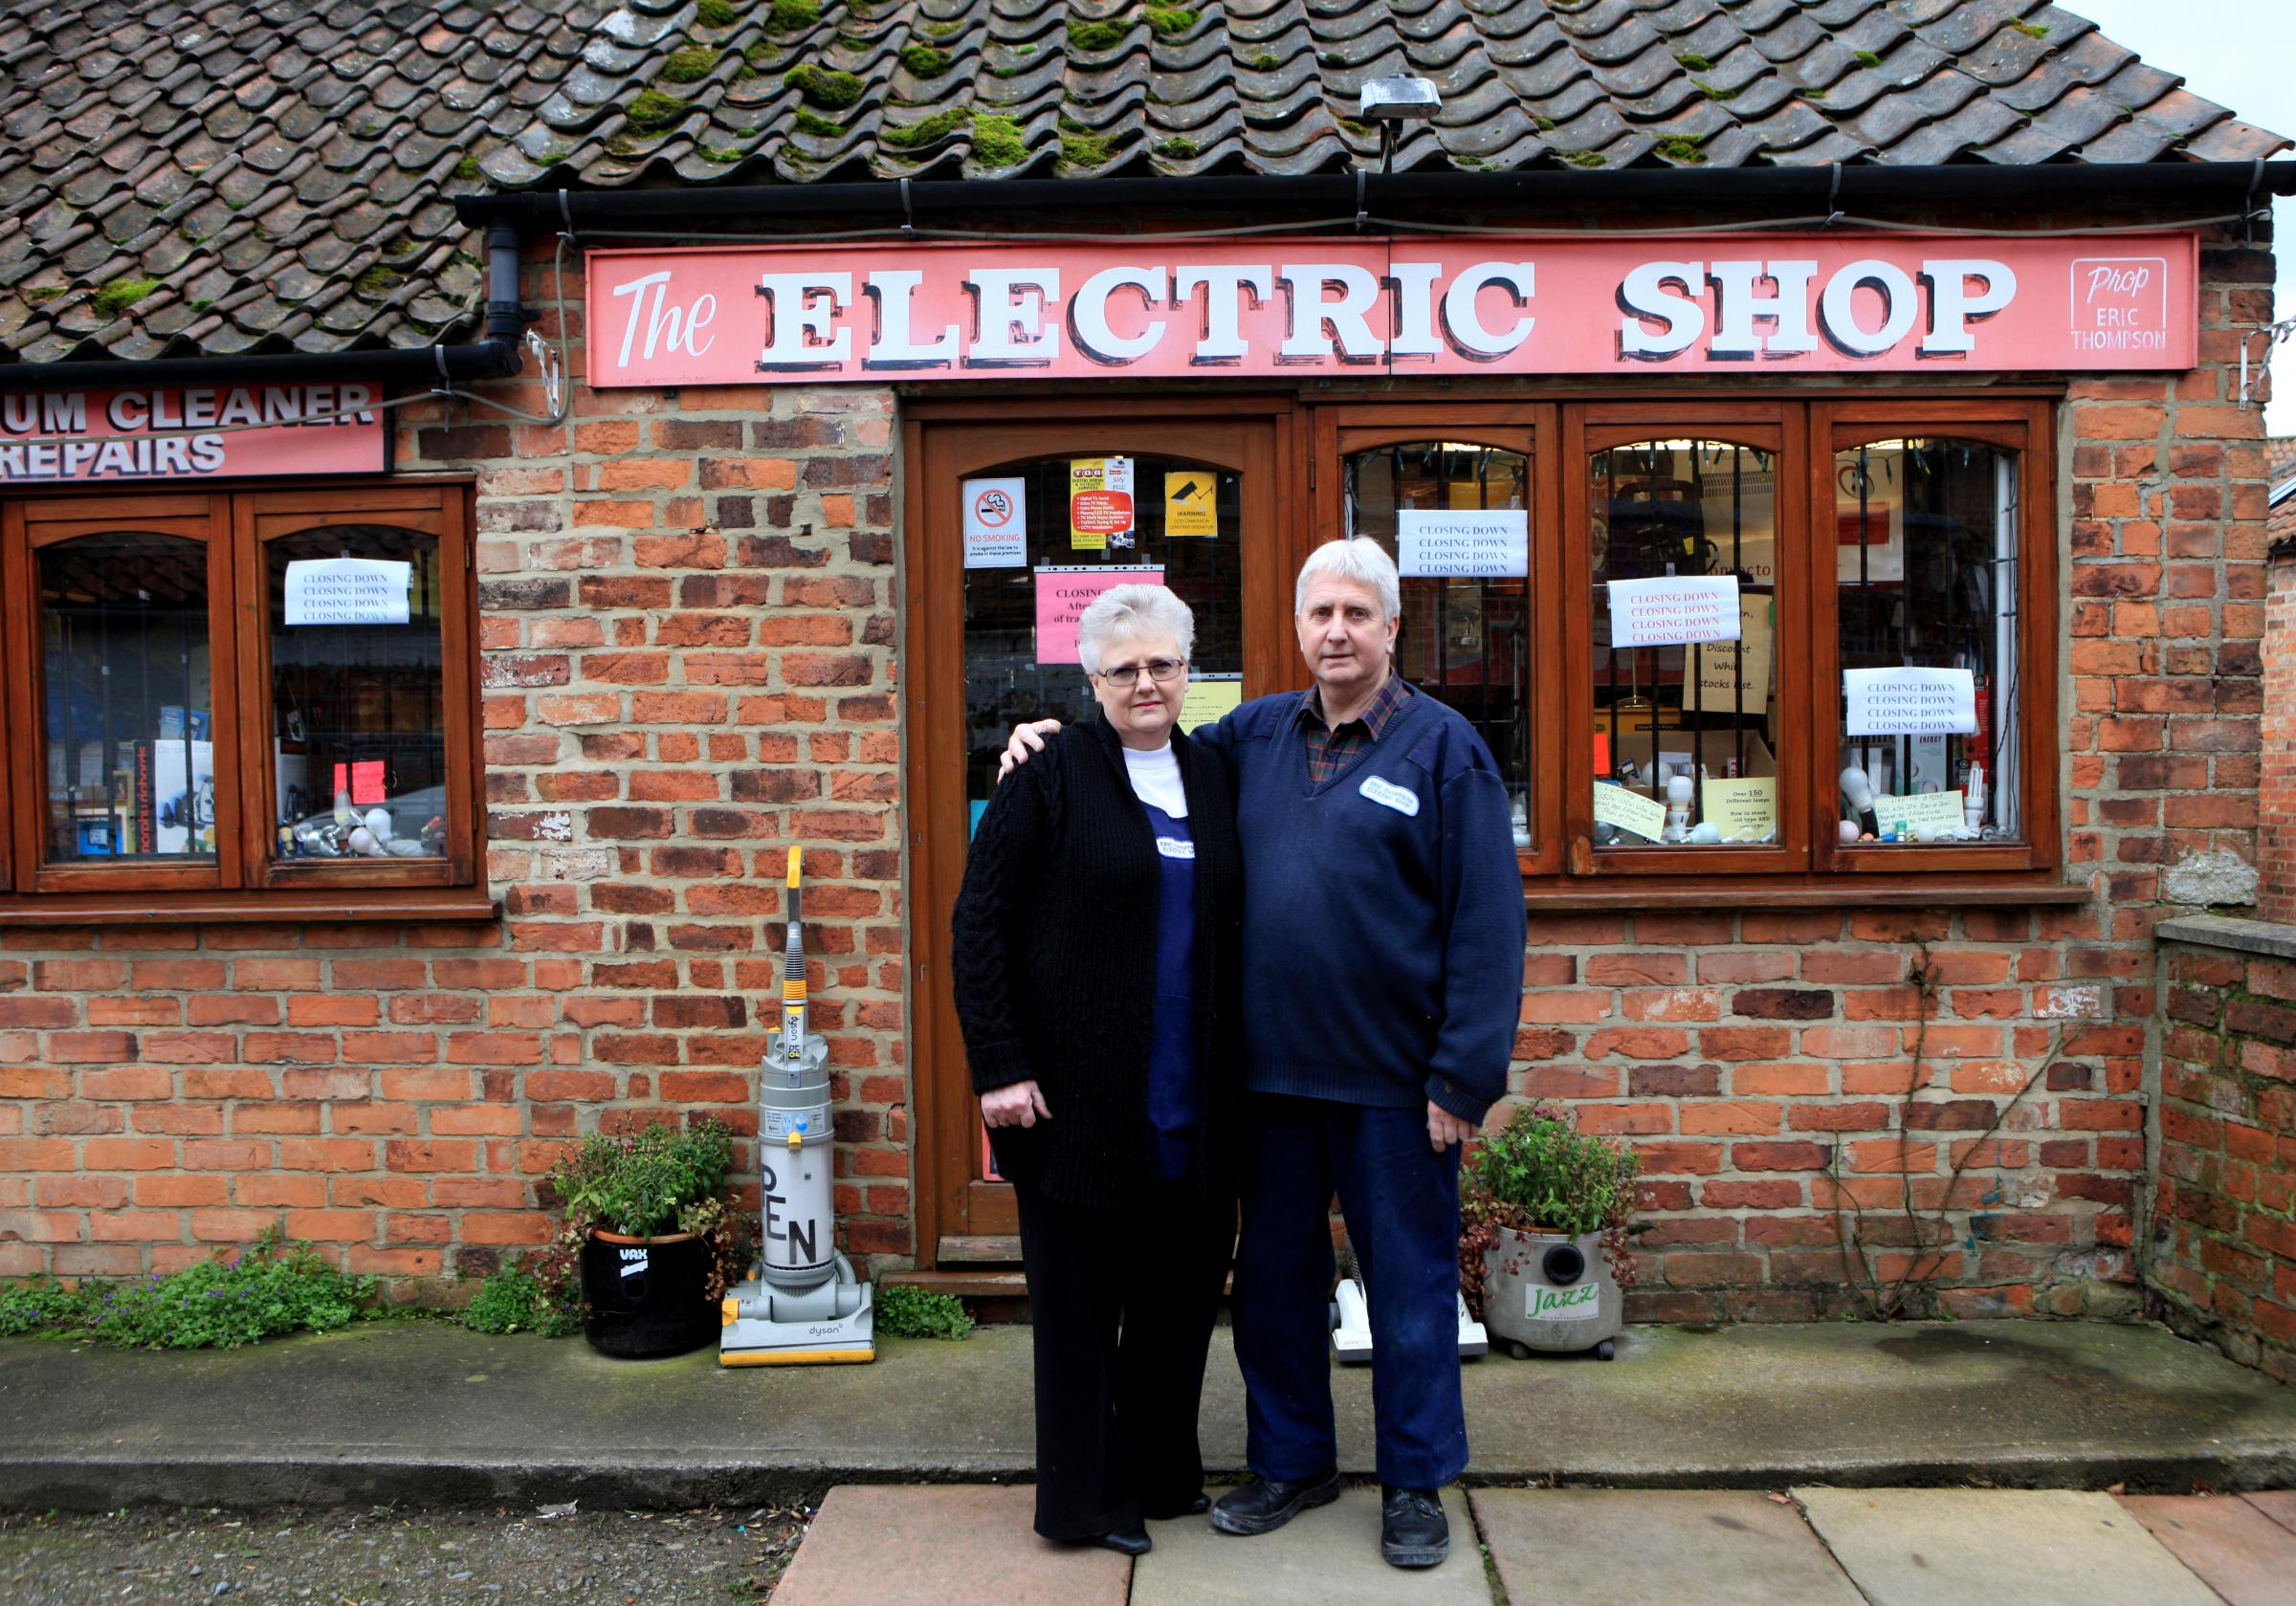 The Electrical shop in Thirsk which brought power to Thirsk and Catterick Garrison set to close after 91 years, pictured owners David and Susan Higgs